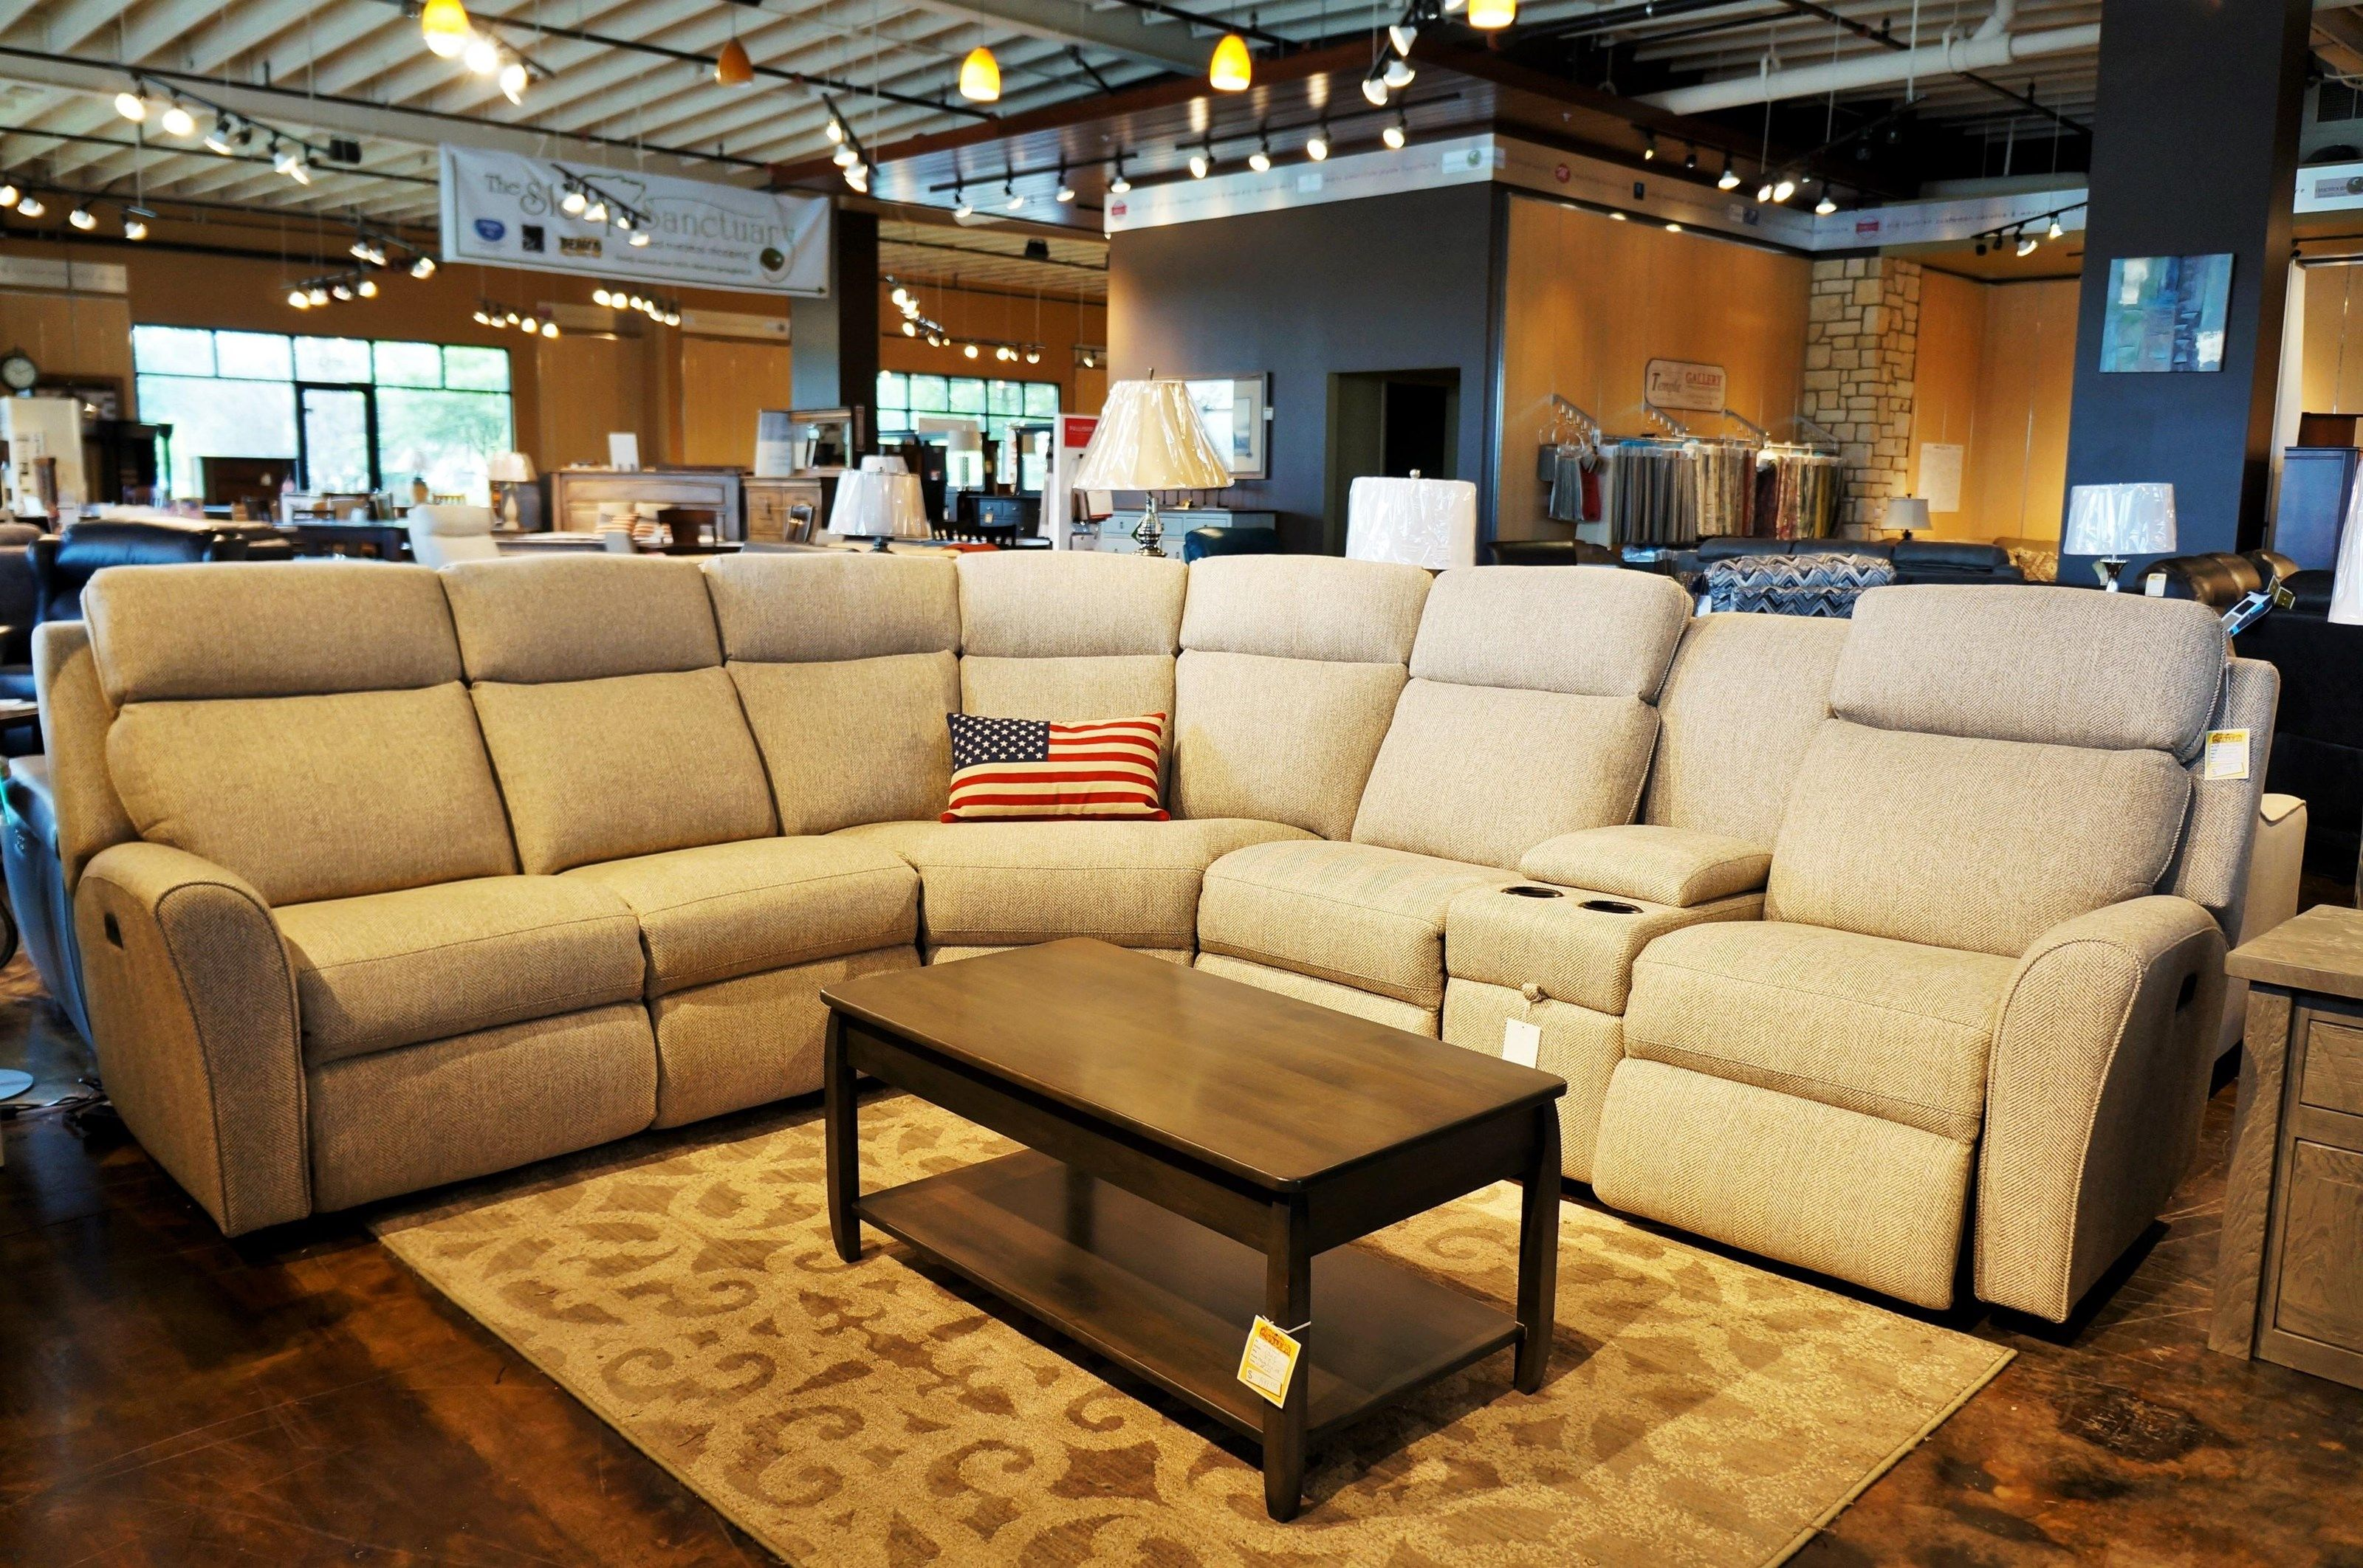 418 Motorized Reclining Sectional Sofa By Smith Brothers Available At Www Muellerfurniture Com Sectional Sofa With Recliner Reclining Sectional Sectional Sofa